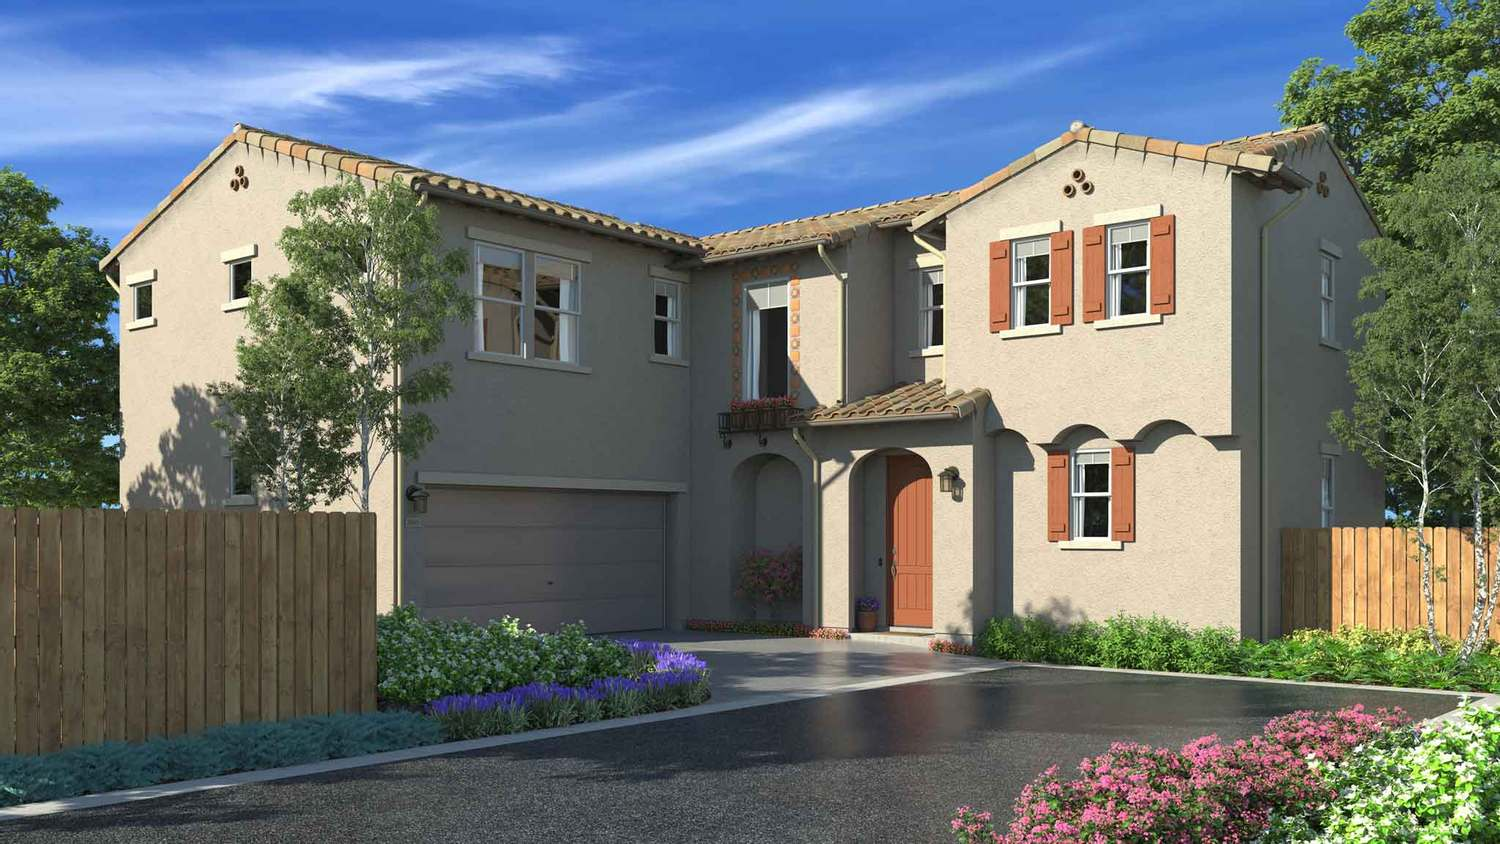 Single Family for Sale at The Gardens - Residence 7 1850 S. Biscayne St. Santa Maria, California 93458 United States